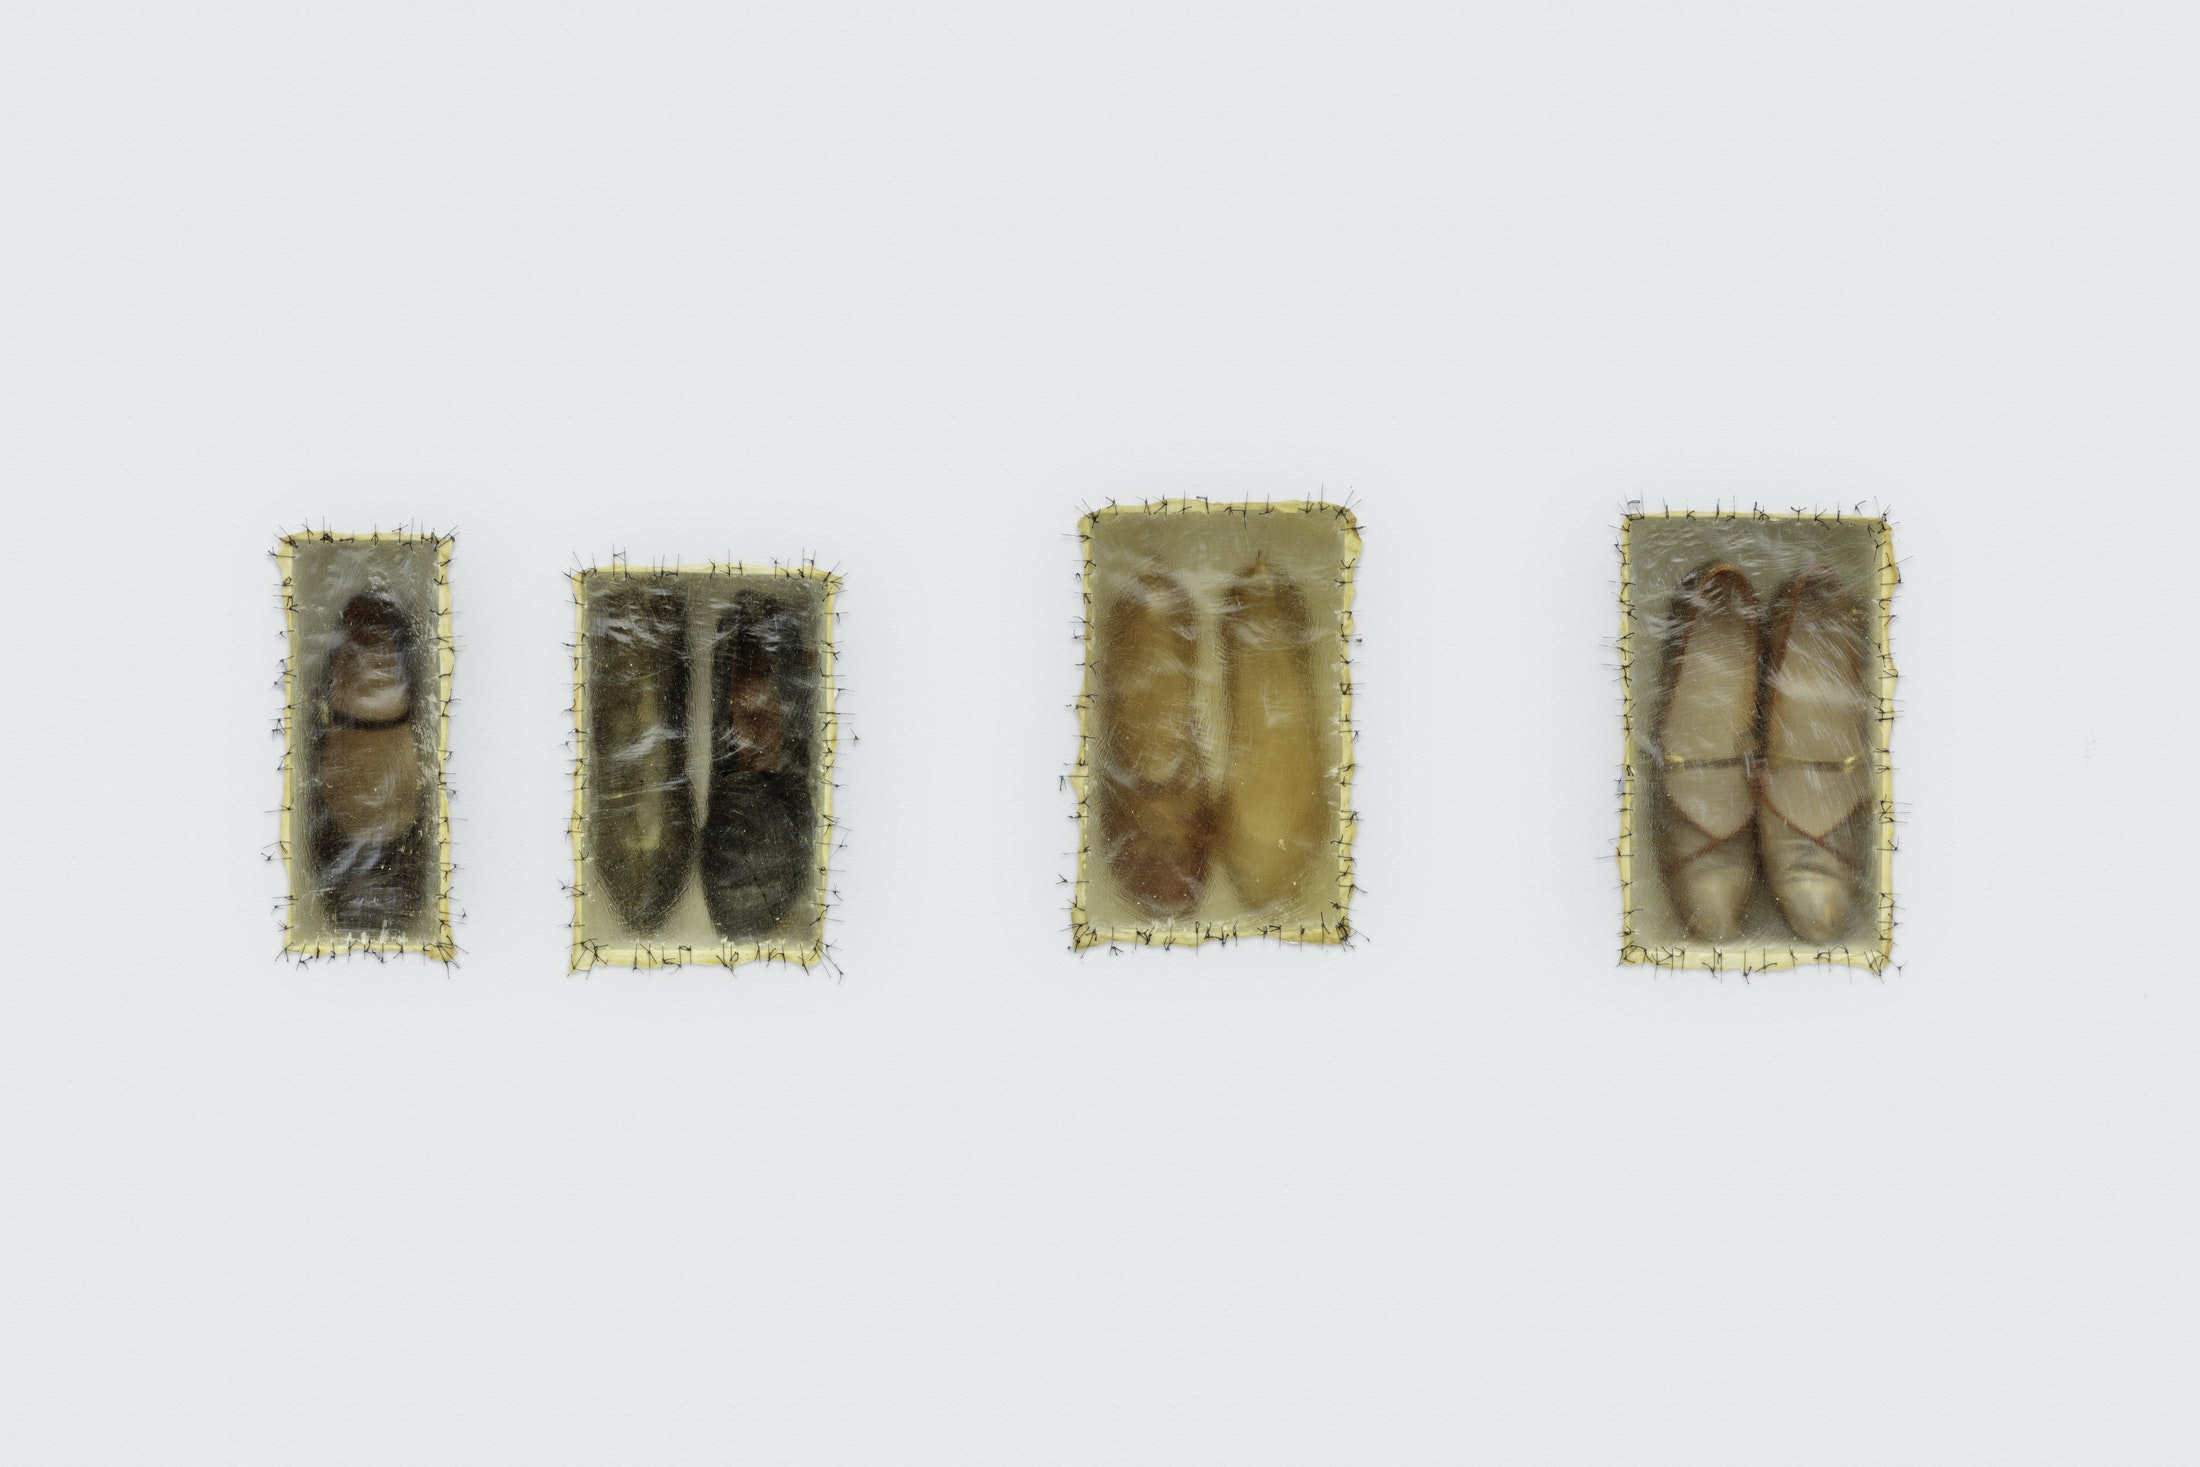 Doris Salcedo, Atrabiliarios, 1993. Wall installation with plywood, seven shoes, cow bladder, and surgical thread. 26 x 54 x 4 in. © Doris Salcedo. Courtesy of the artist and White Cube. The Eileen Harris Norton Collection. Photo: Charles White.